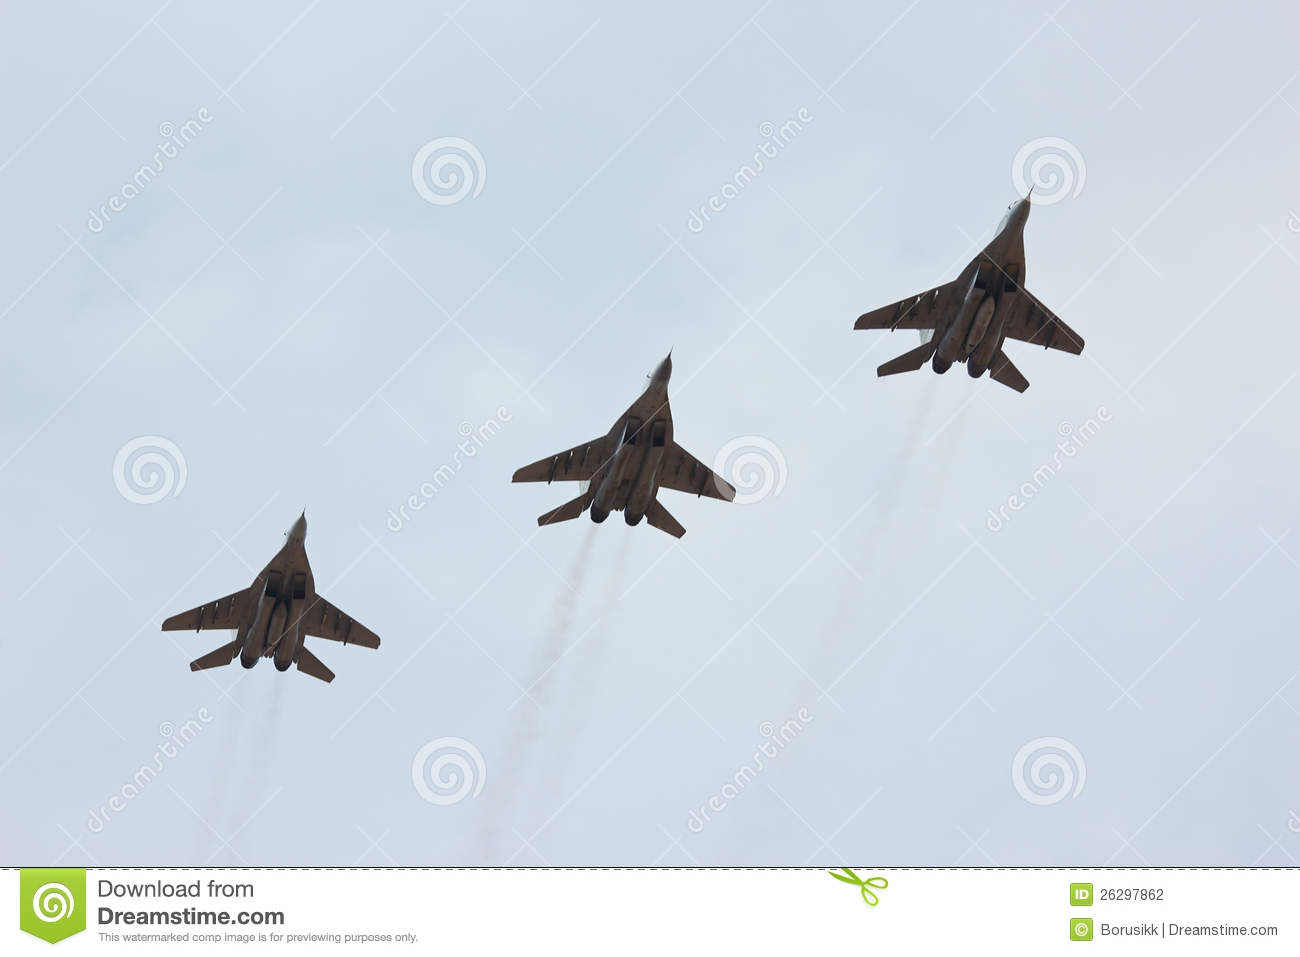 Soviet MiG fighter http://www.dreamstime.com/stock-photography-three-flying-russian-jet-fighter-mig-29-image26297862